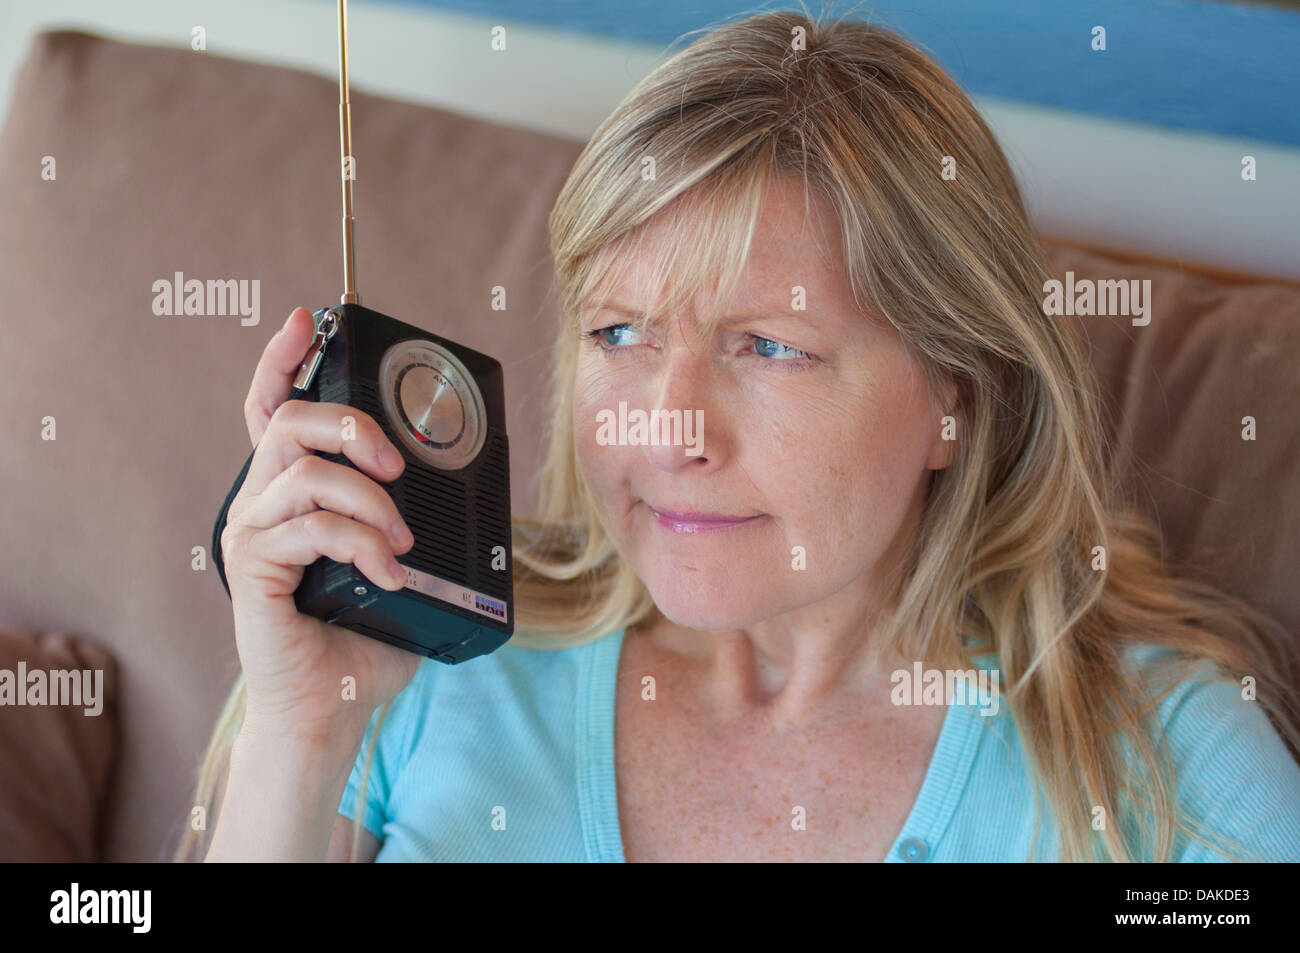 Woman with unsure expression listening to radio. - Stock Image